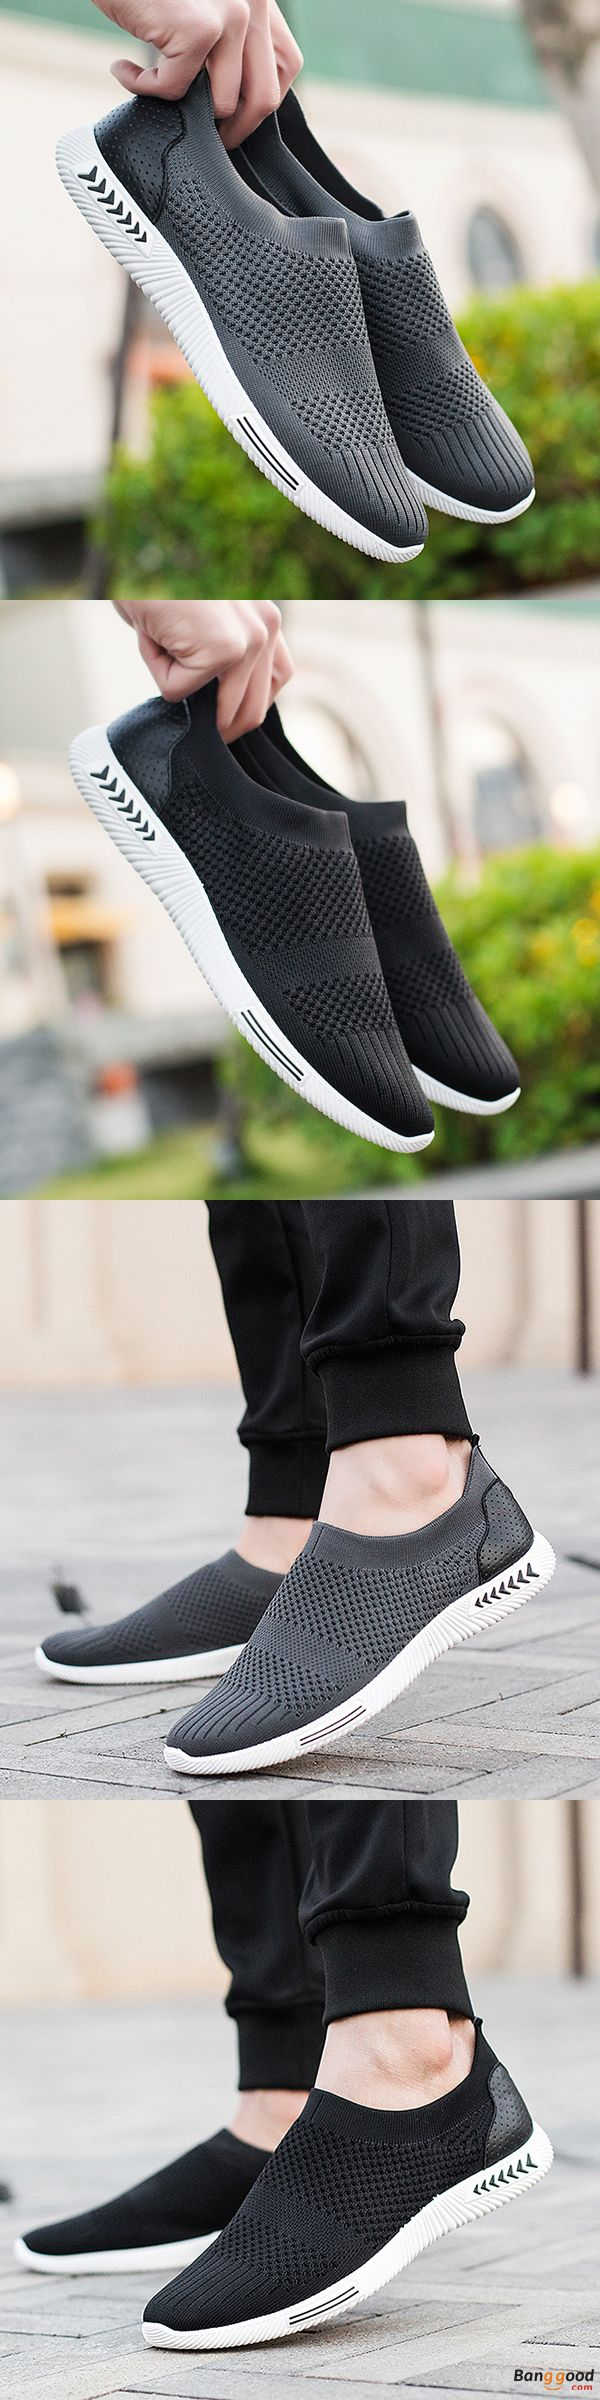 US$24.88 + Free shipping. Sneaker, Reasonable Shoes, Men Shoes, Mesh Shoes, Breathable Shoes, Sport Shoes, Casual Flats, Sport Shoes, Slip on Shoes. Color: Black, Gray. Perfect Sport Shoes.